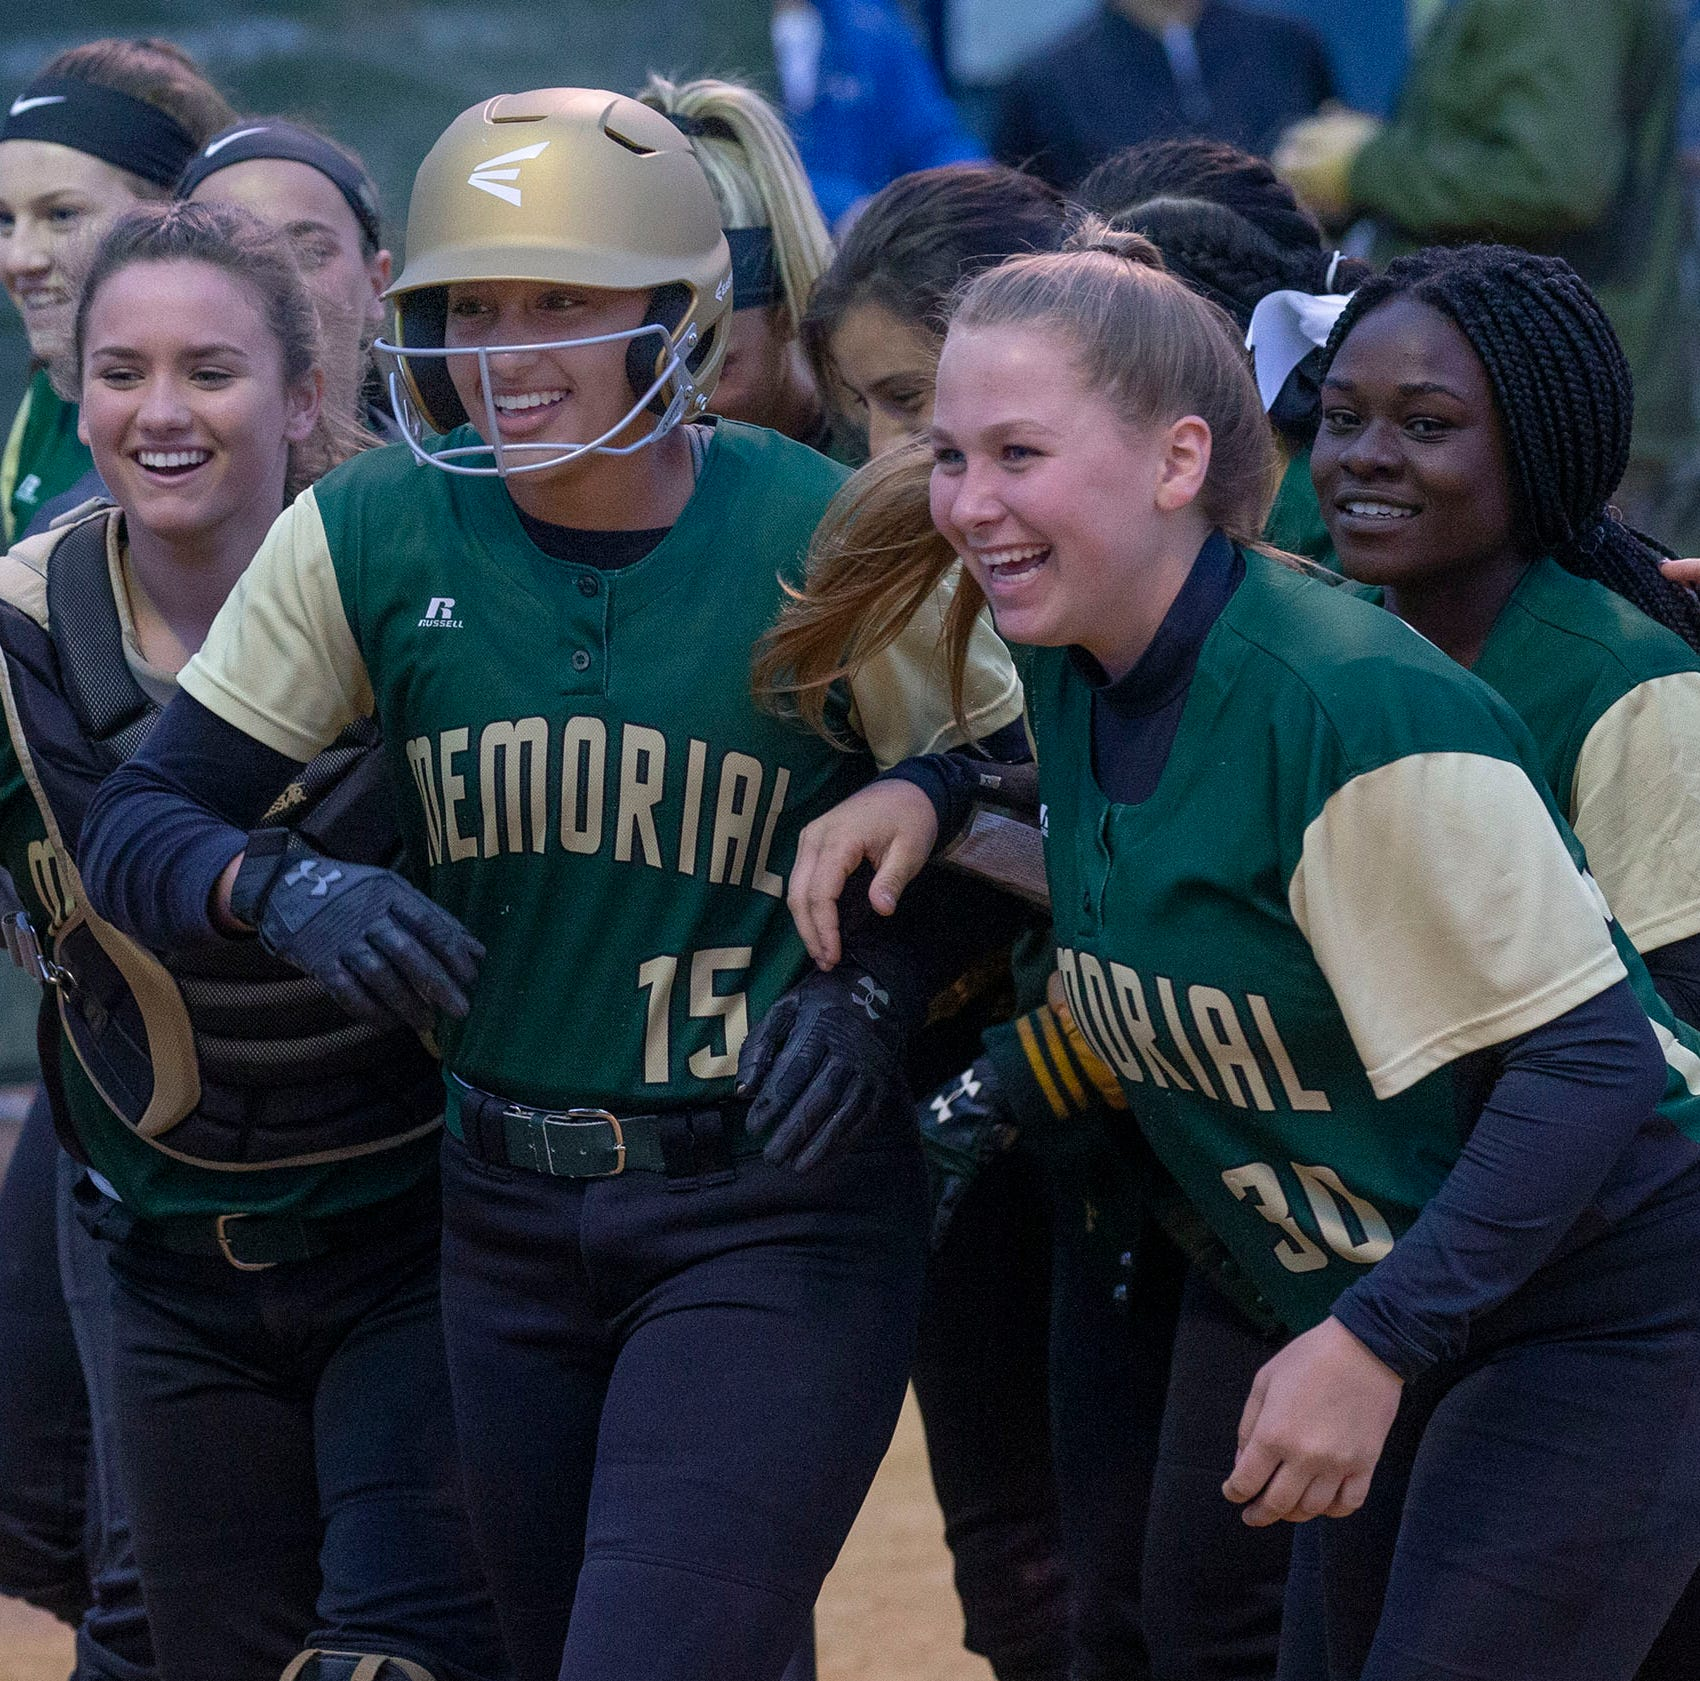 NJ softball: Richards leads Brick Memorial to OCT title